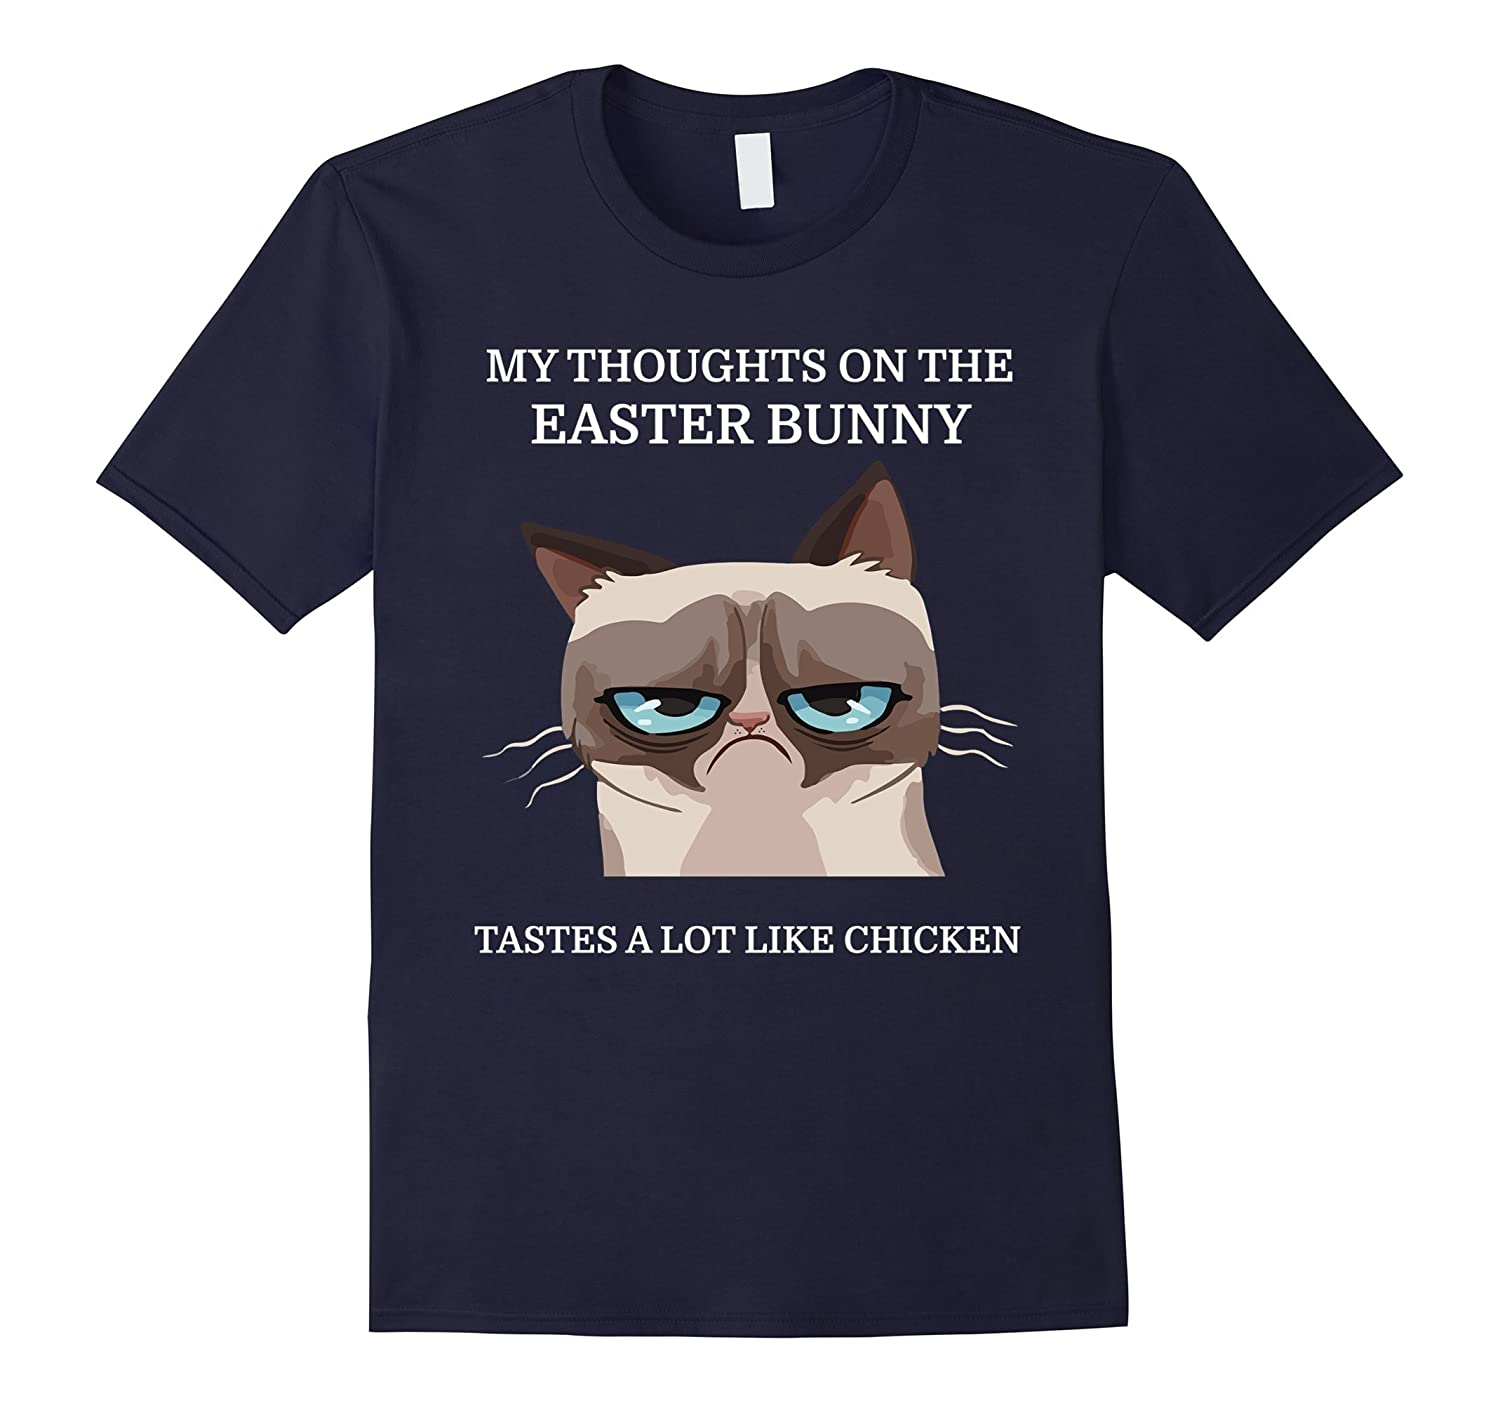 Grumpy Funny Cat T-Shirt Easter Bunny Chicken Humor Tee-TH